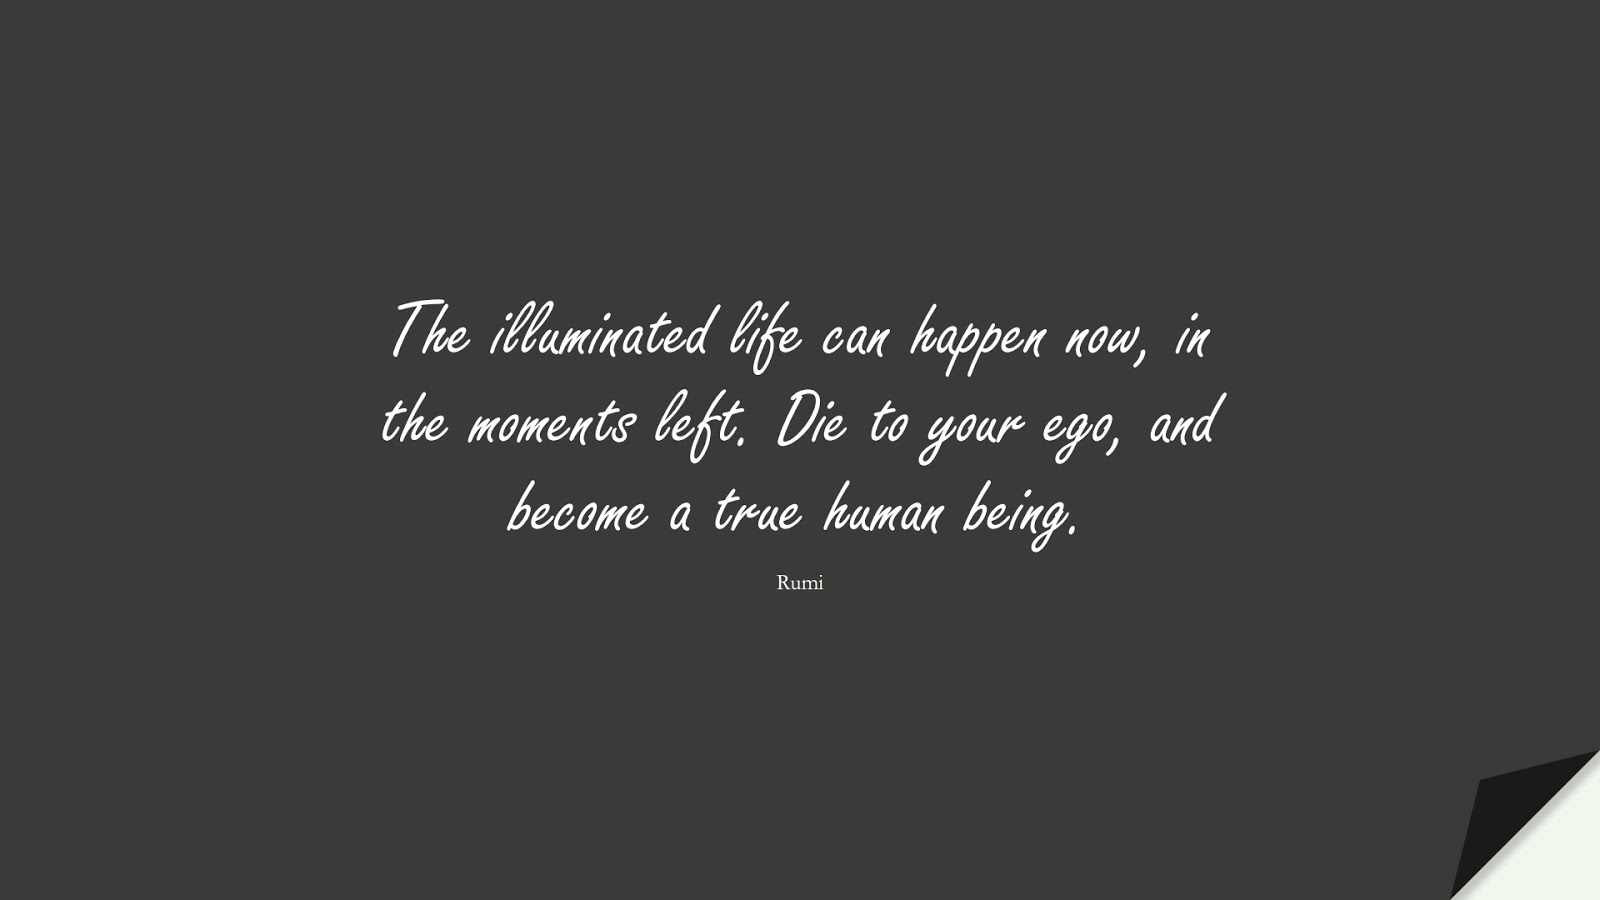 The illuminated life can happen now, in the moments left. Die to your ego, and become a true human being. (Rumi);  #RumiQuotes